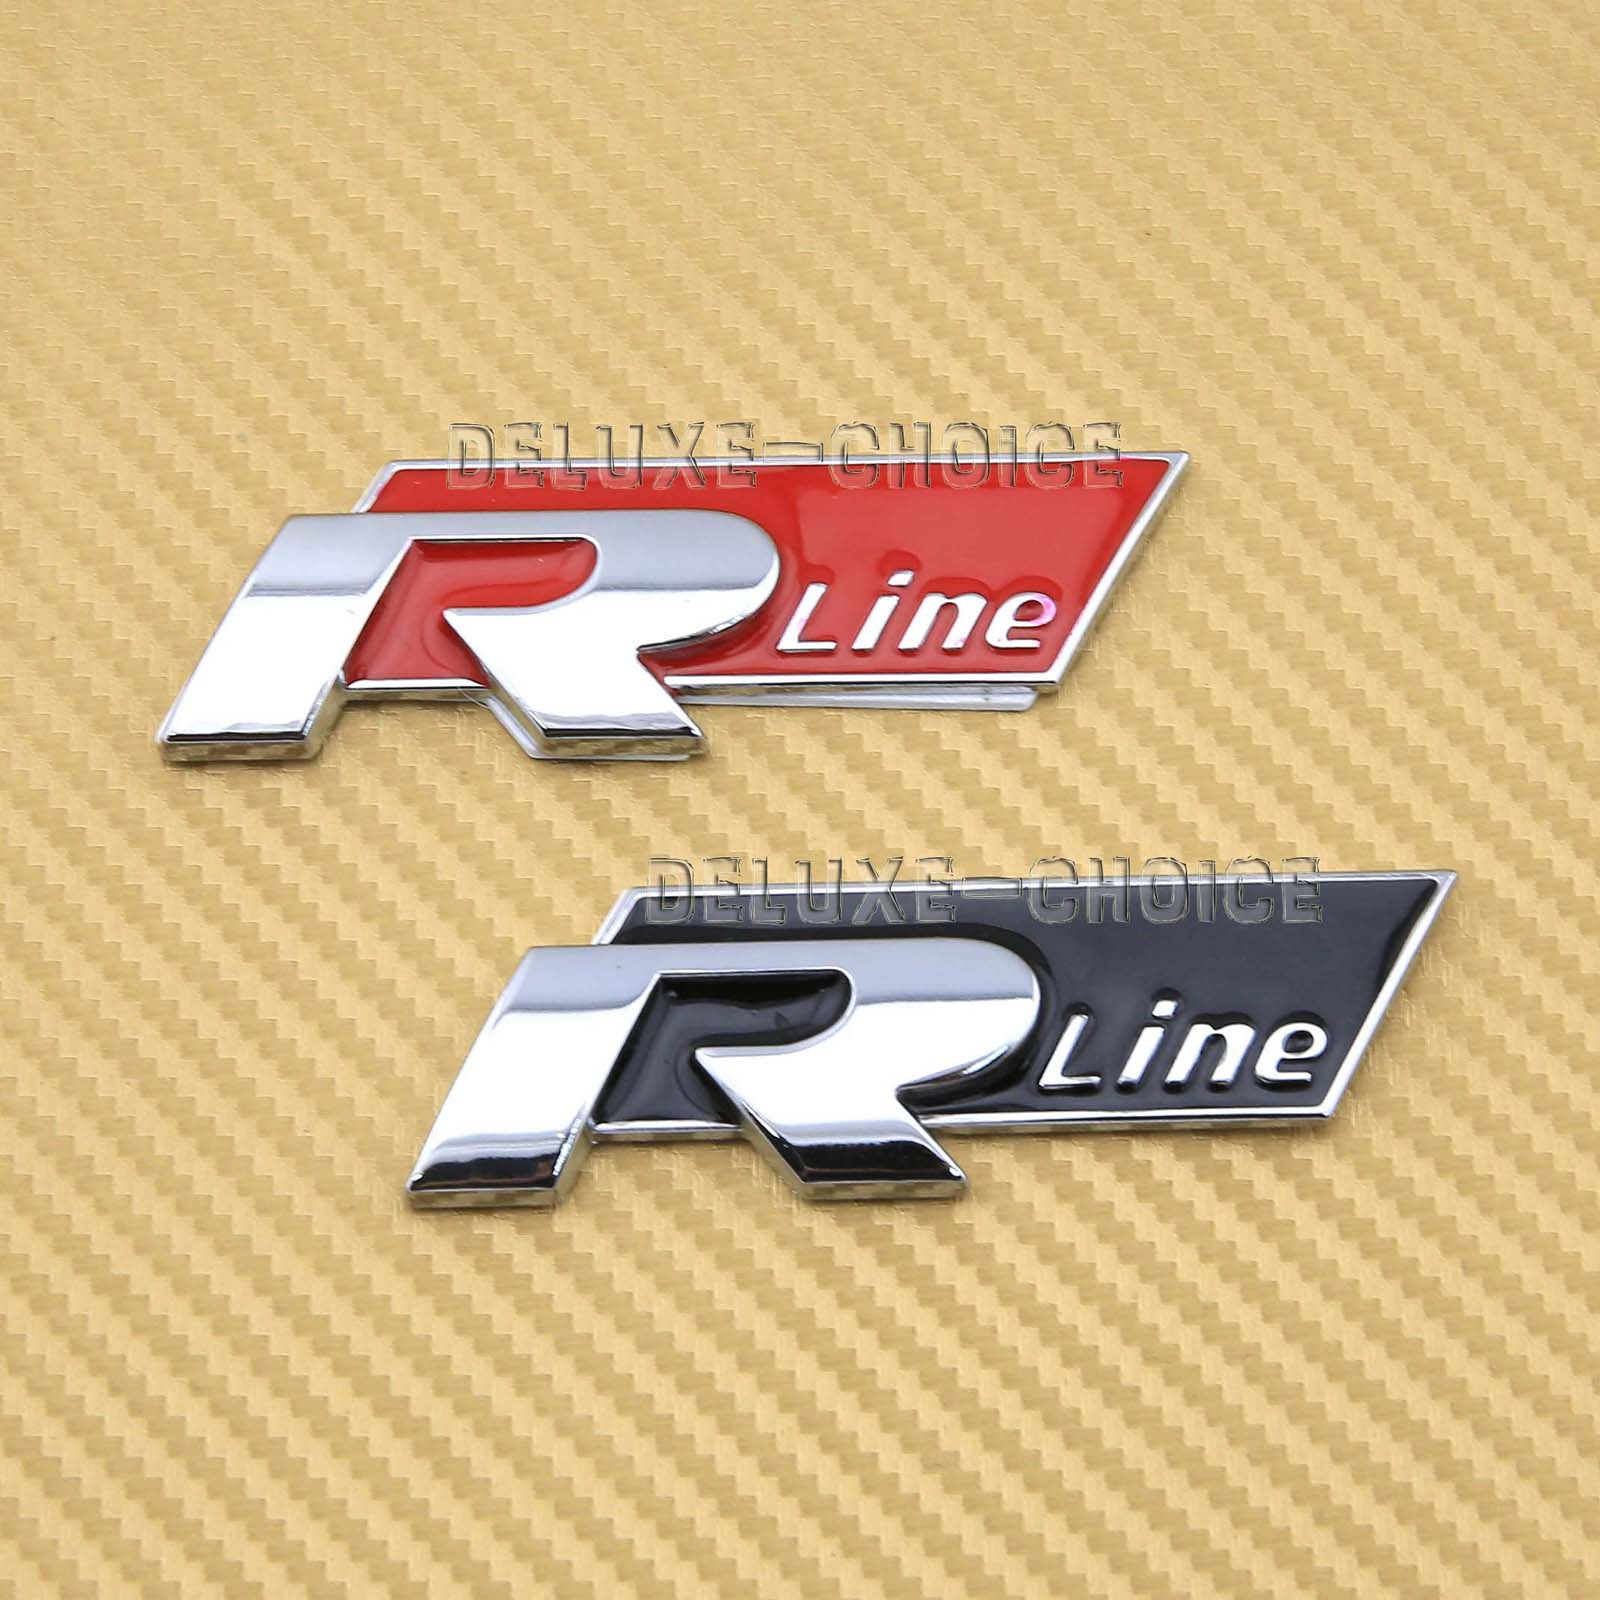 s line r line car body exterior chrome metal emblem logo. Black Bedroom Furniture Sets. Home Design Ideas